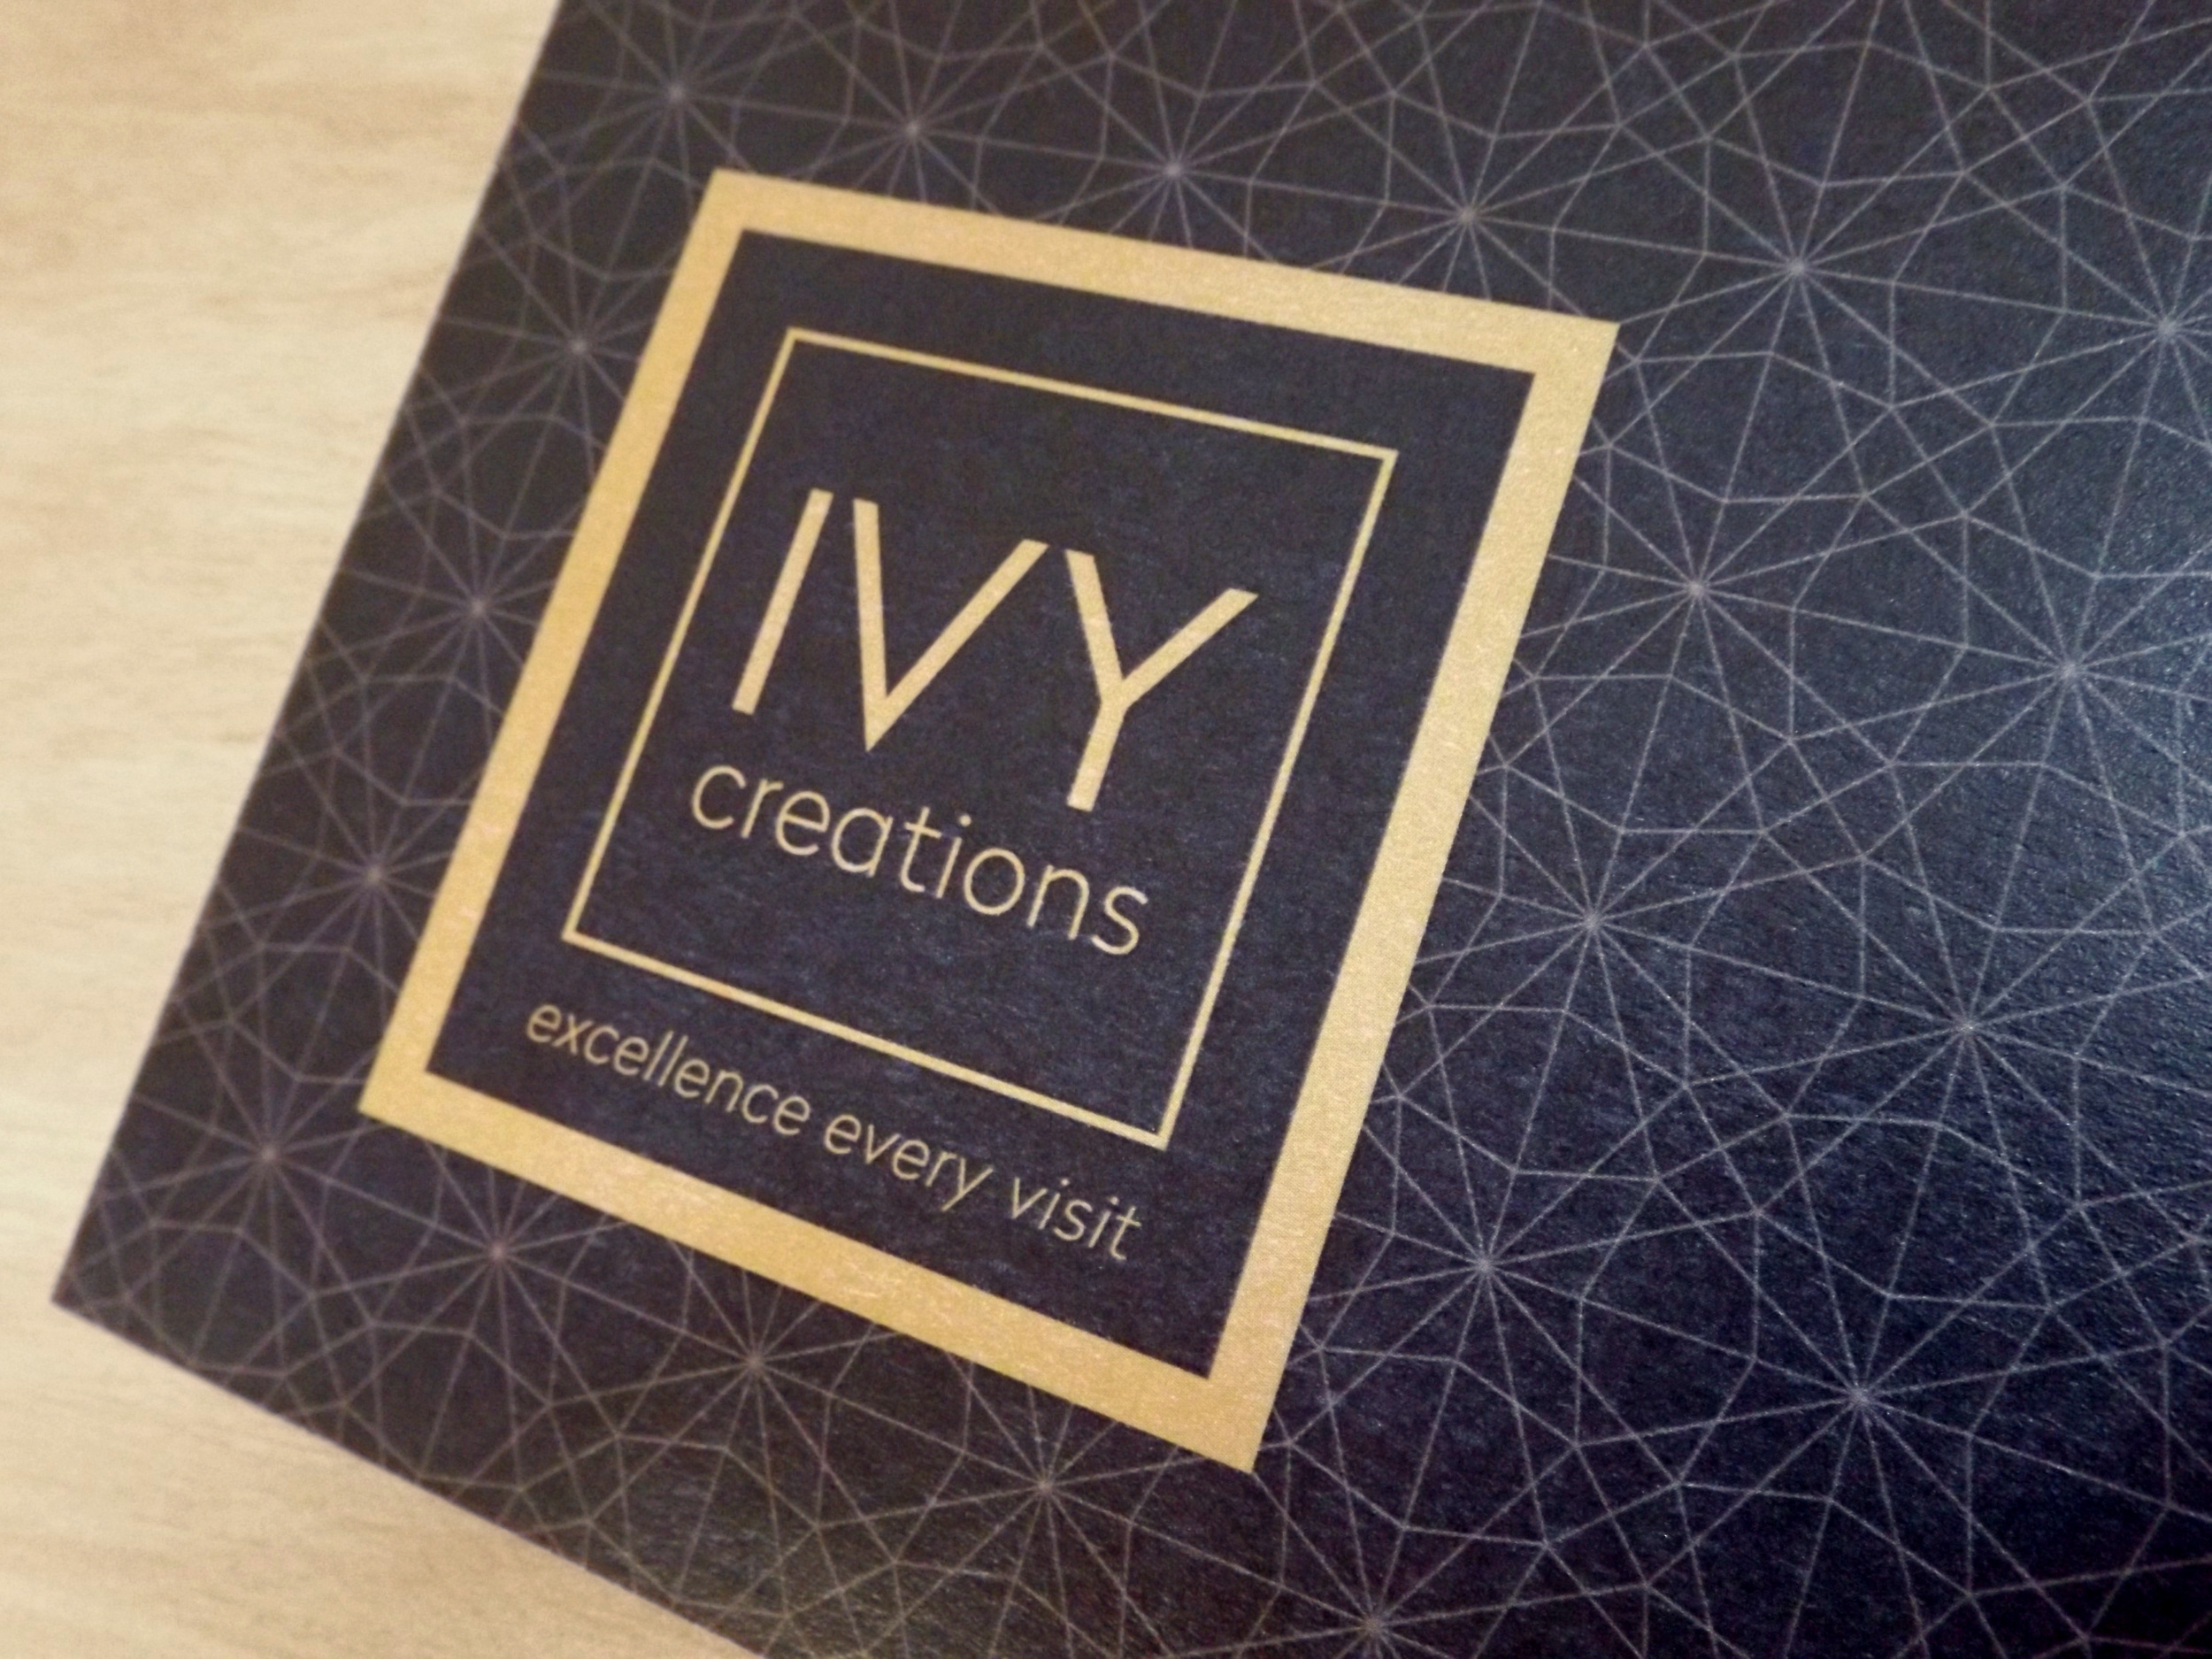 IVY CREATIONS - Rebranding. Morrison Design, Graphic Design and Branding Agency Geelong, Melbourne, VIC.